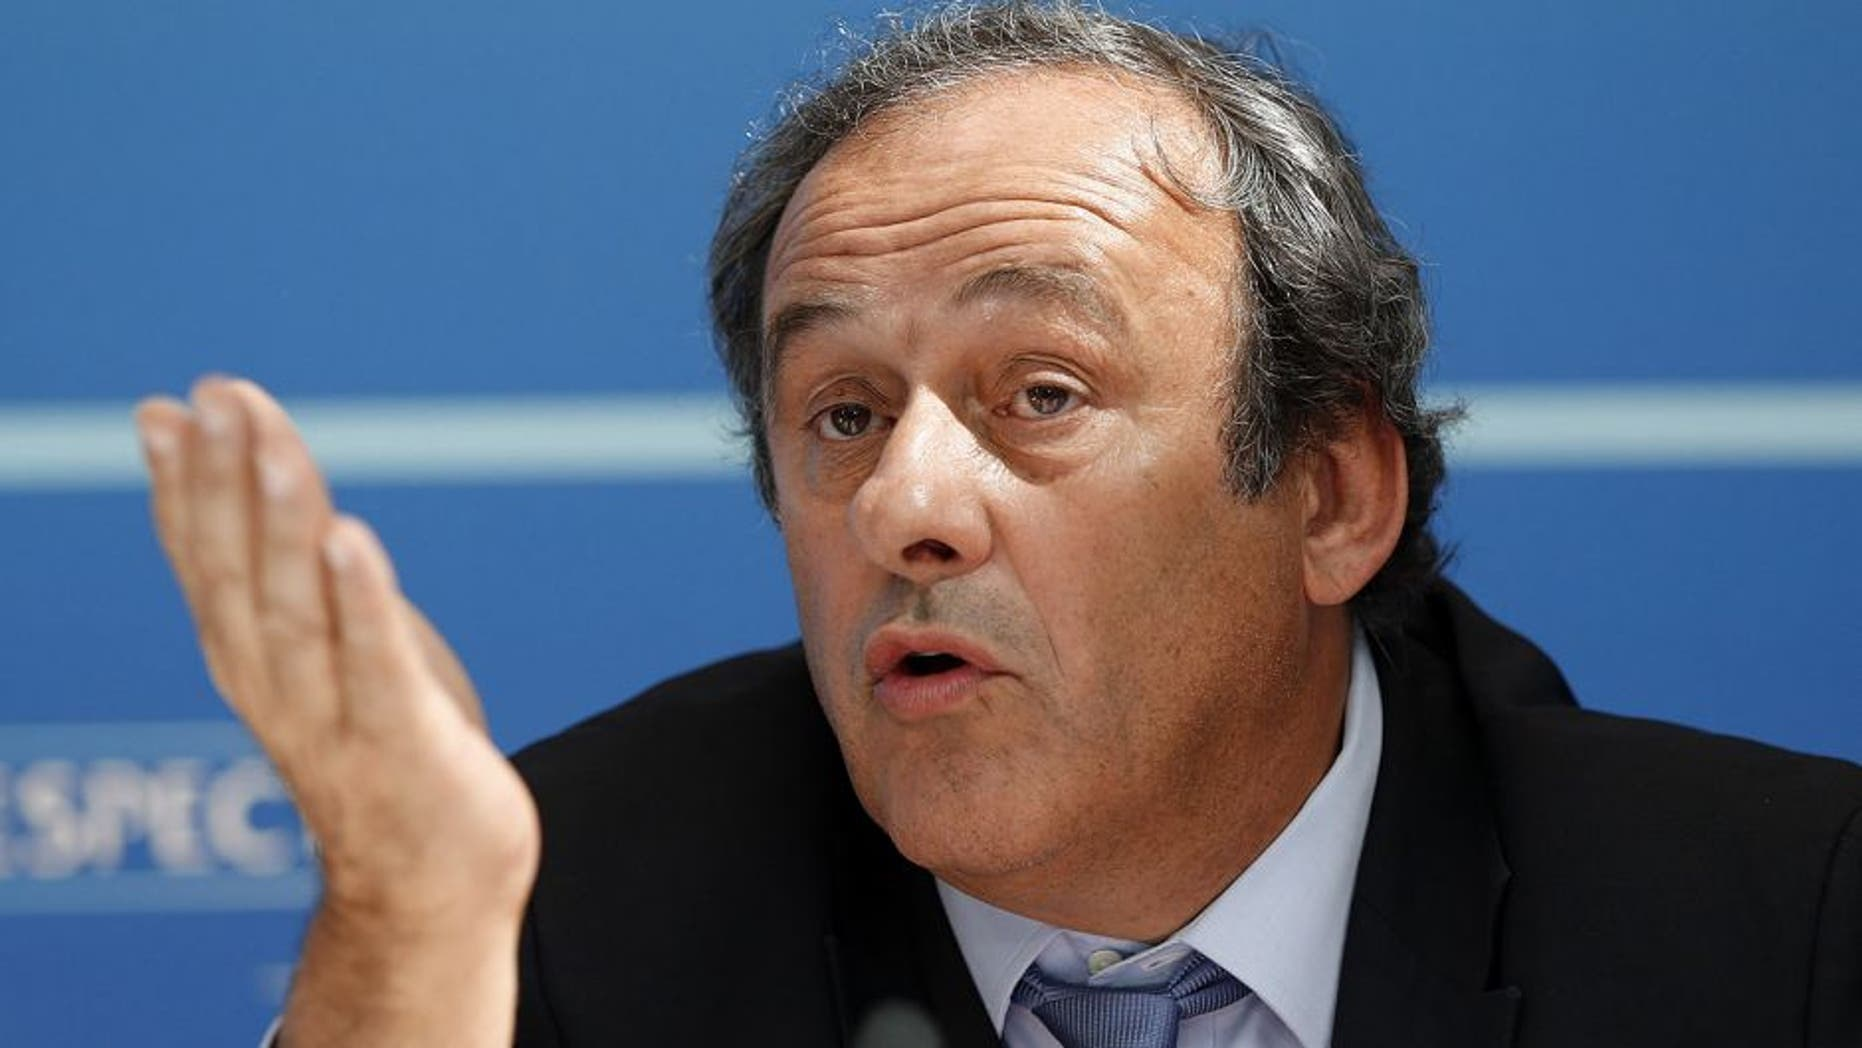 UEFA chief Michel Platini gestures as he speaks during a UEFA press conference after the draw for the UEFA Europa League football group stage 2015/16 on August 28, 2015 in Monaco. AFP PHOTO / VALERY HACHE (Photo credit should read VALERY HACHE/AFP/Getty Images)